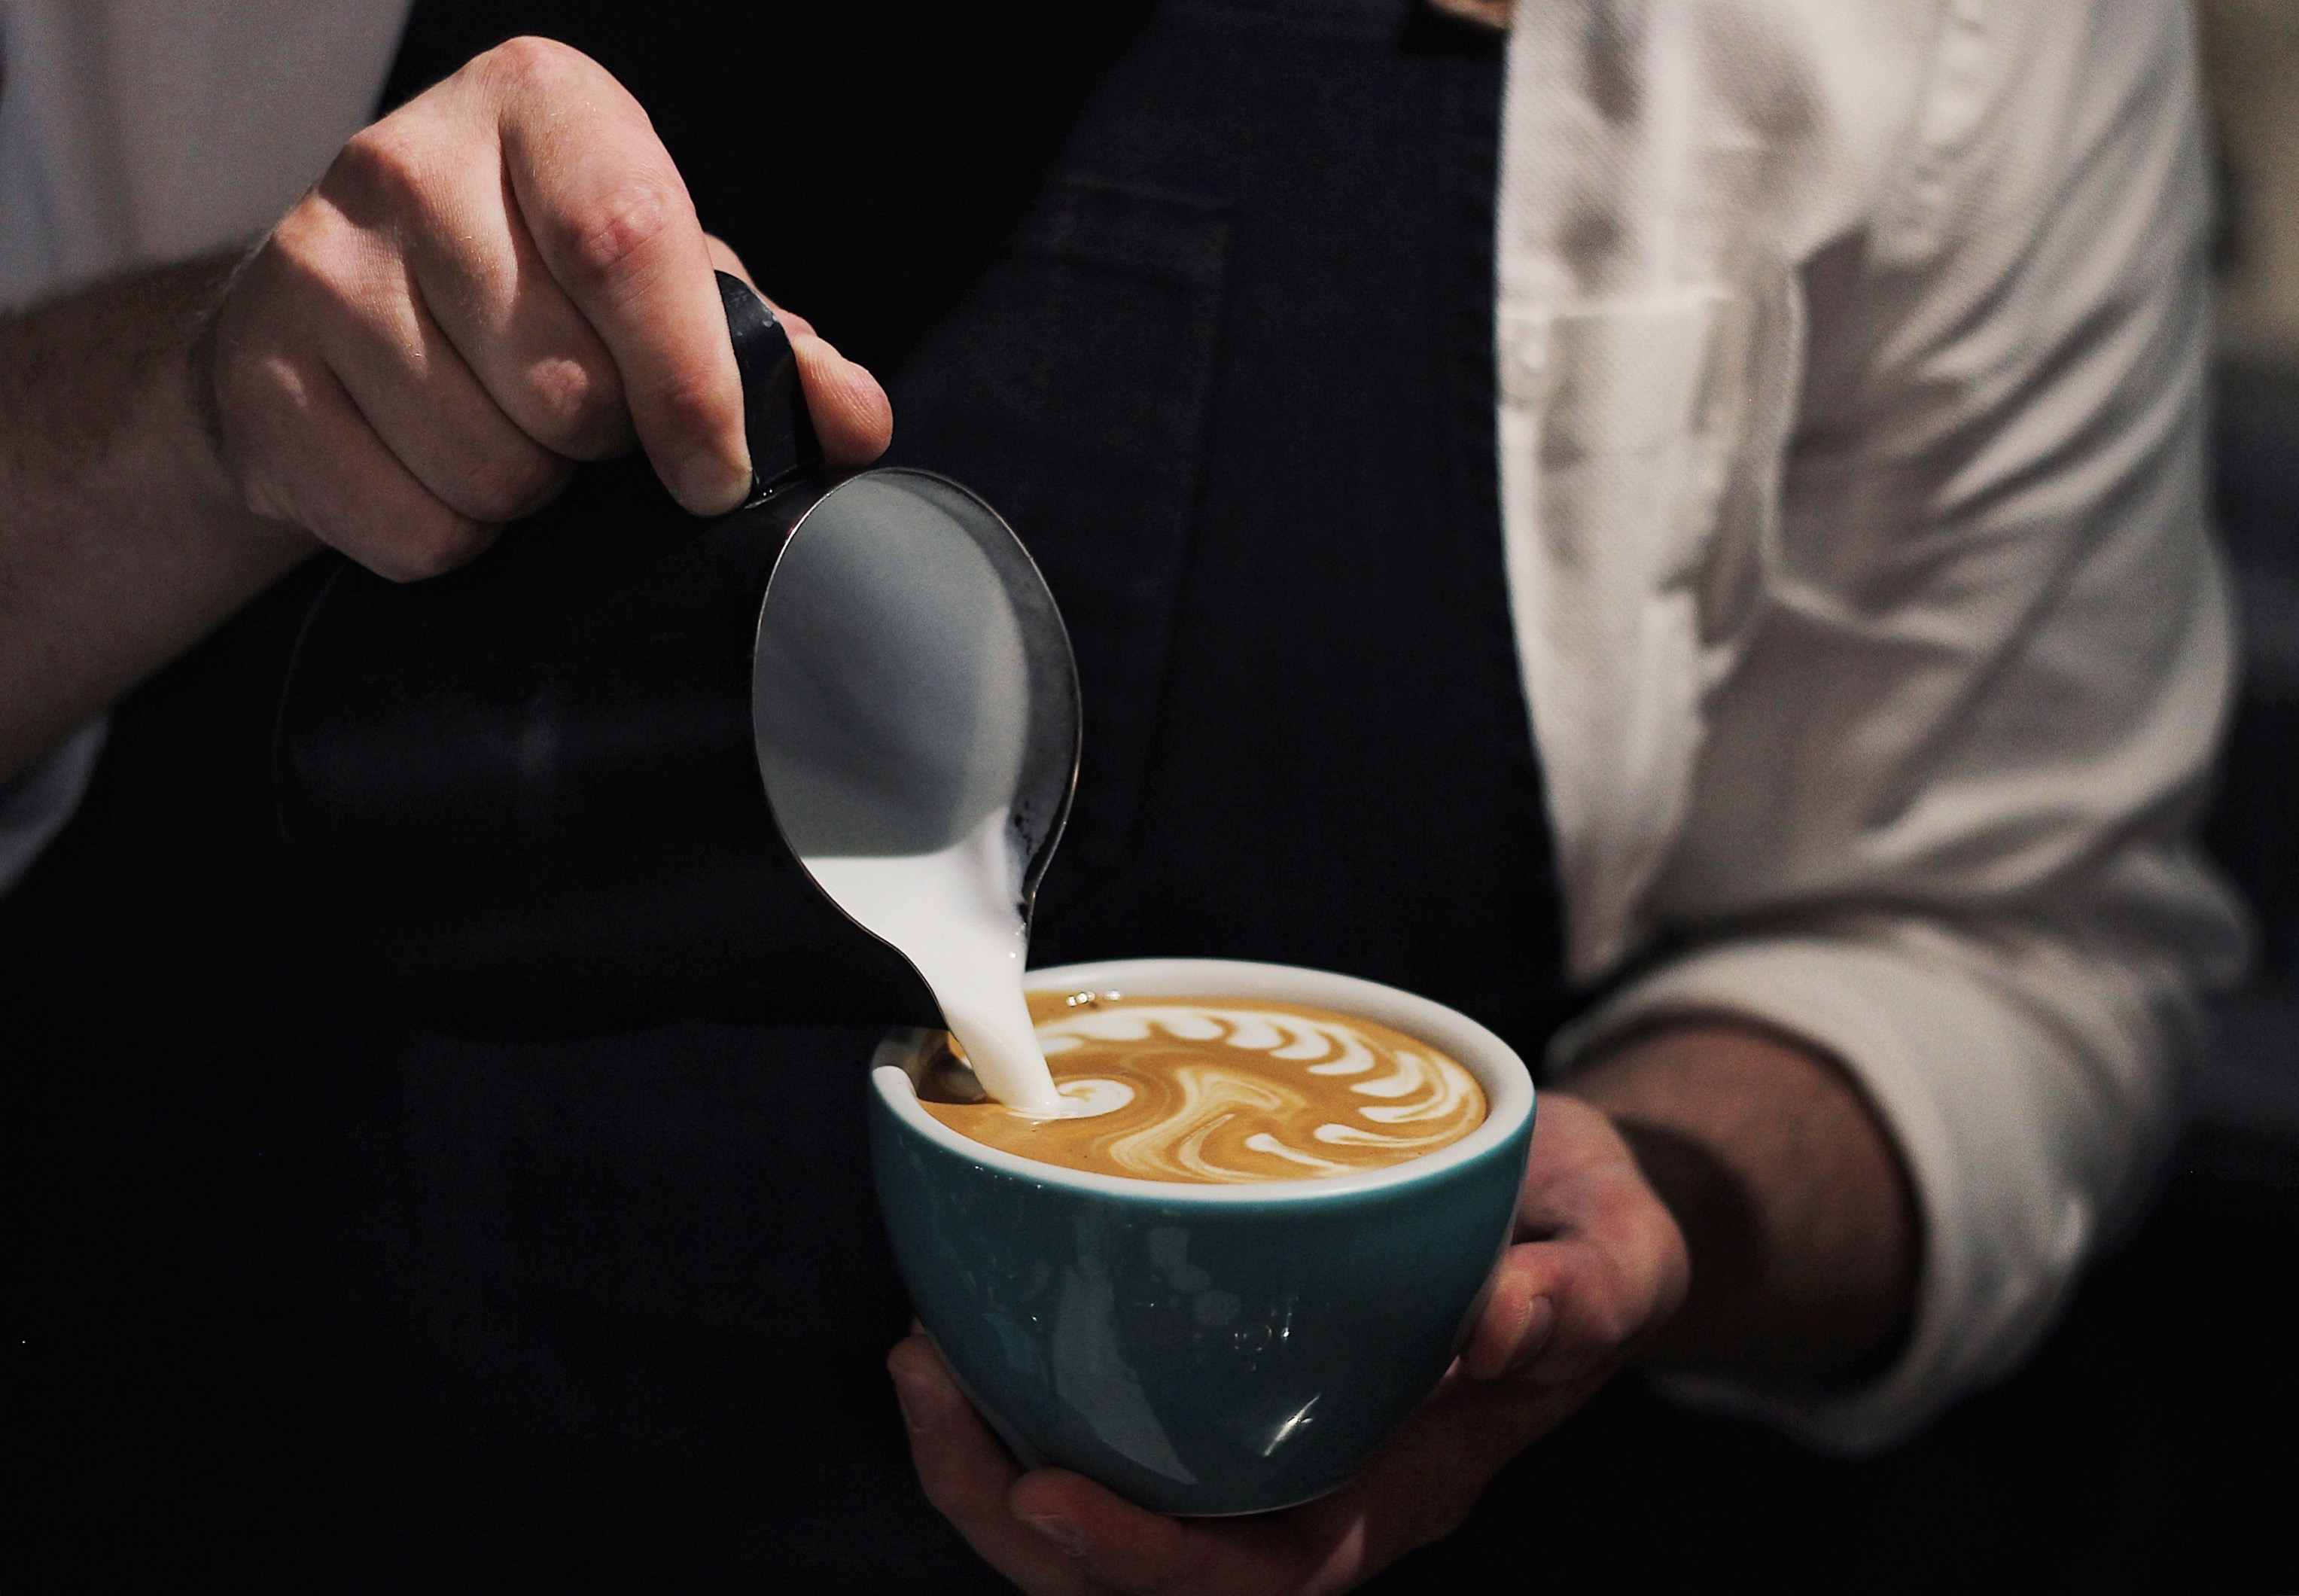 Close-Up Photo of Man Pouring Milk In Coffee